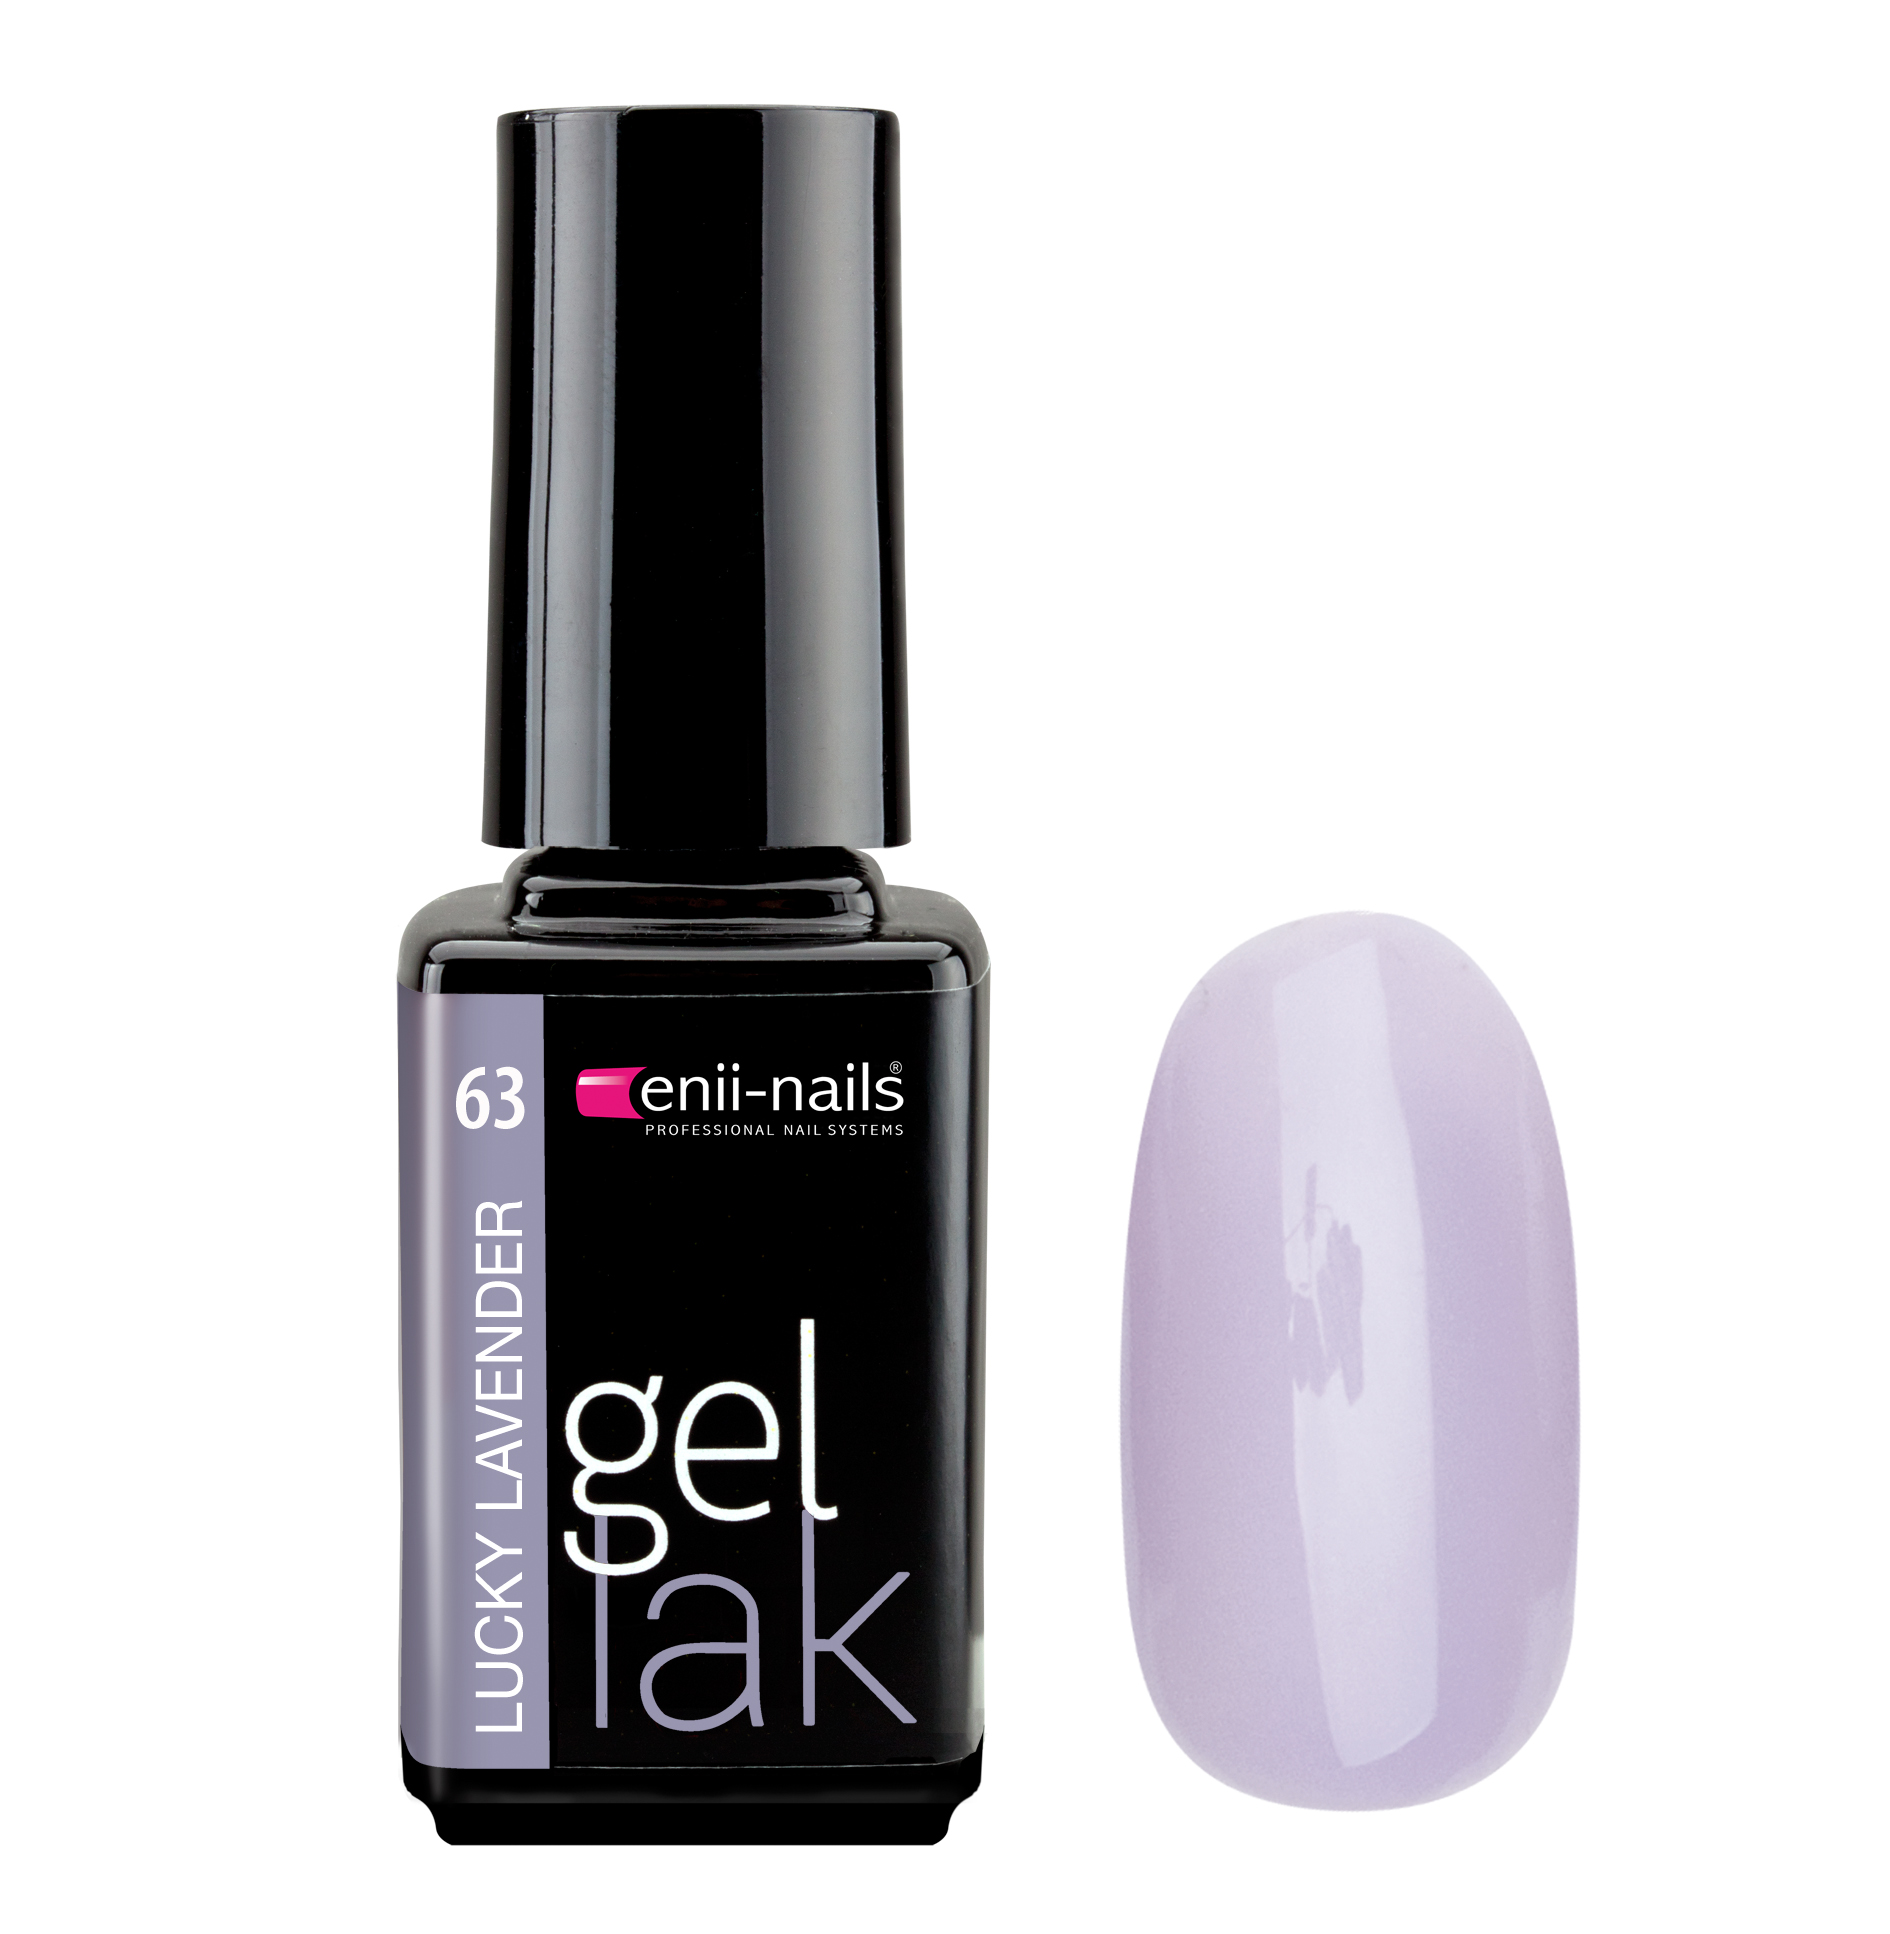 ENII-NAILS Gel lak Lucky Lavender 5 ml